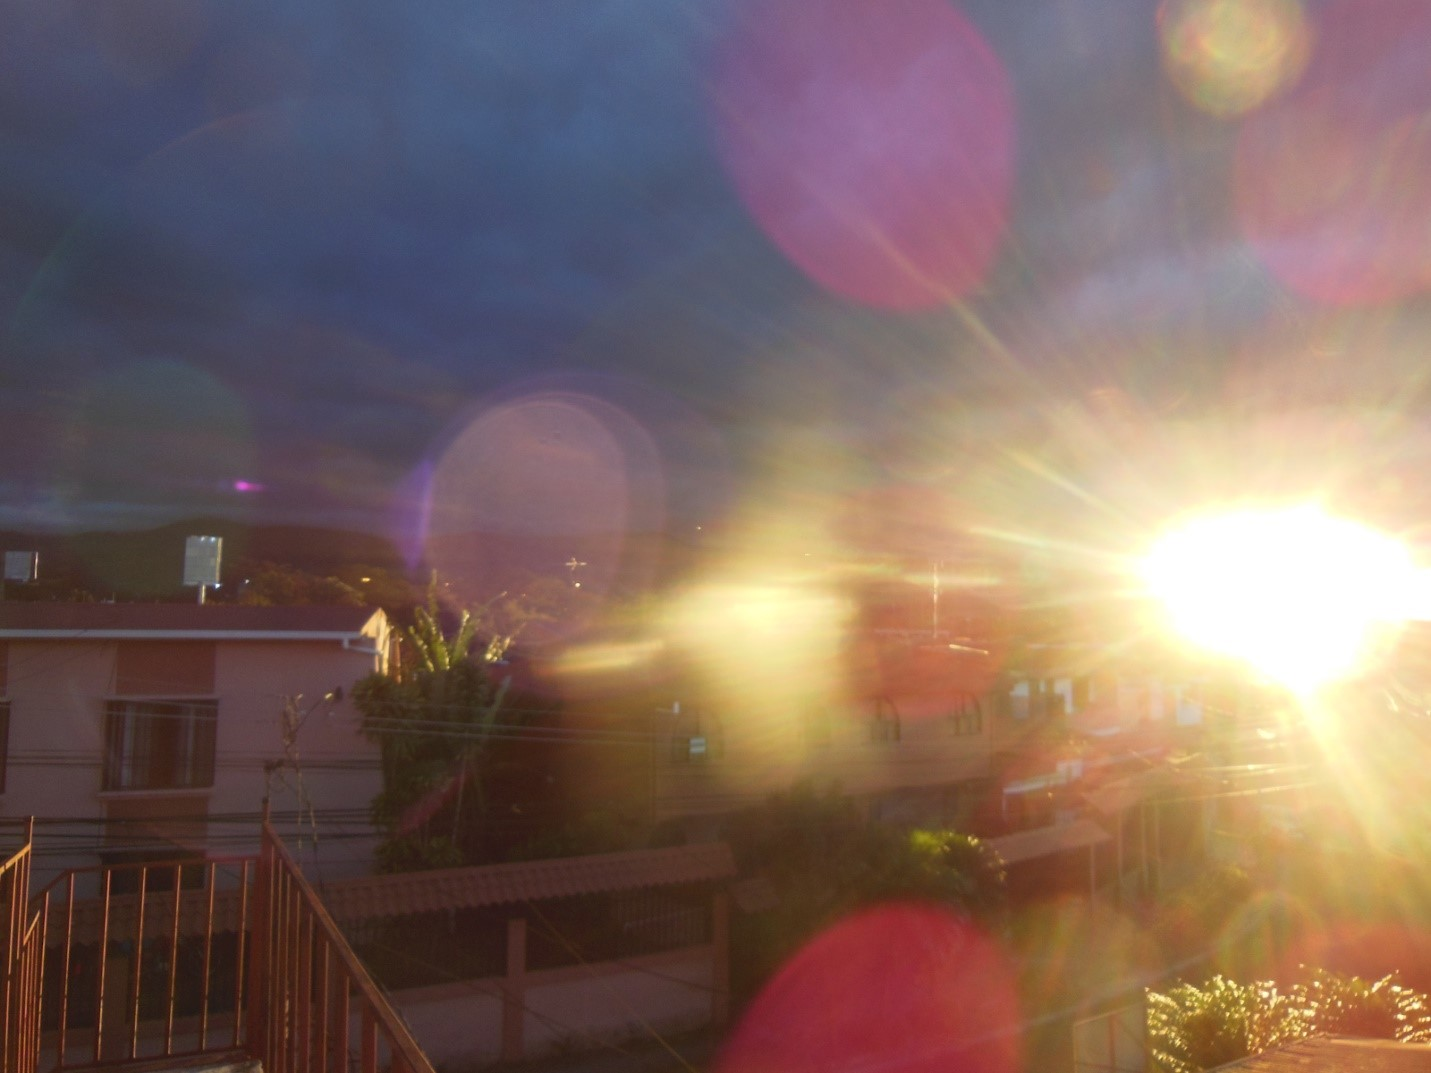 sunset with lens flare overlooking houses in Costa Rica